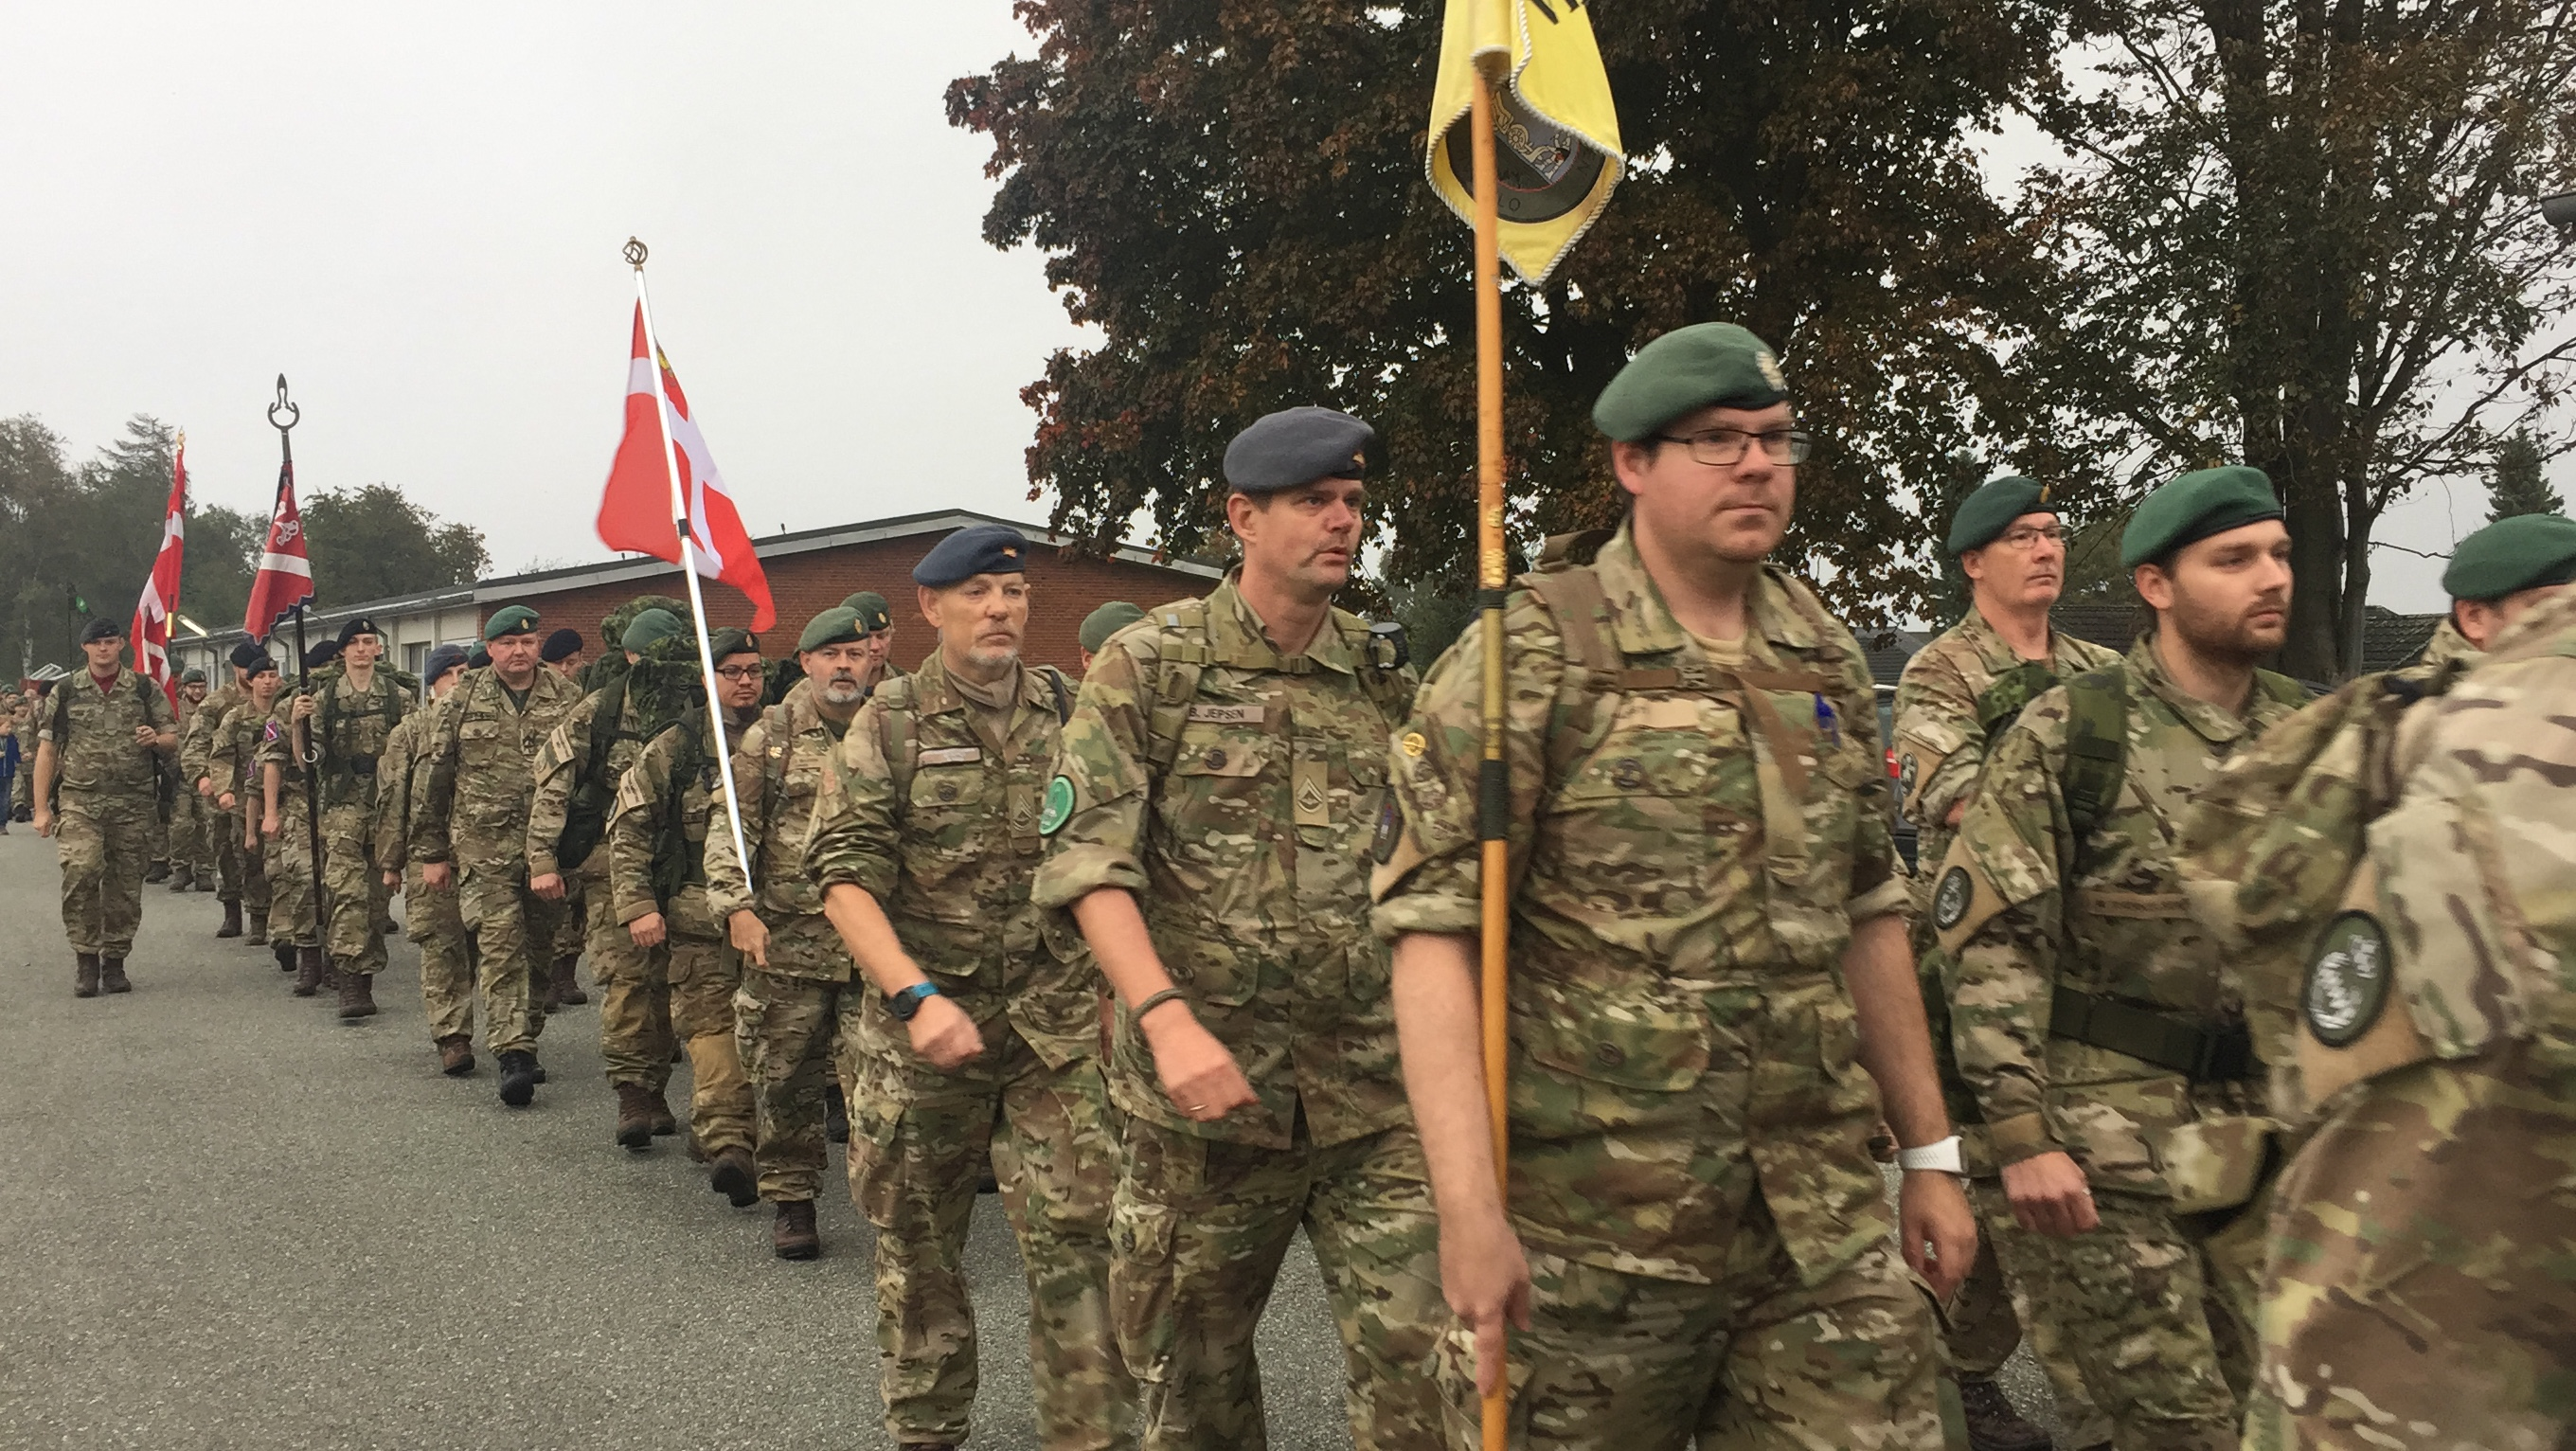 MEDALJEMARCH 2018 – SOLDATER OG CIVILE GIK MARCH I FREDERICIA